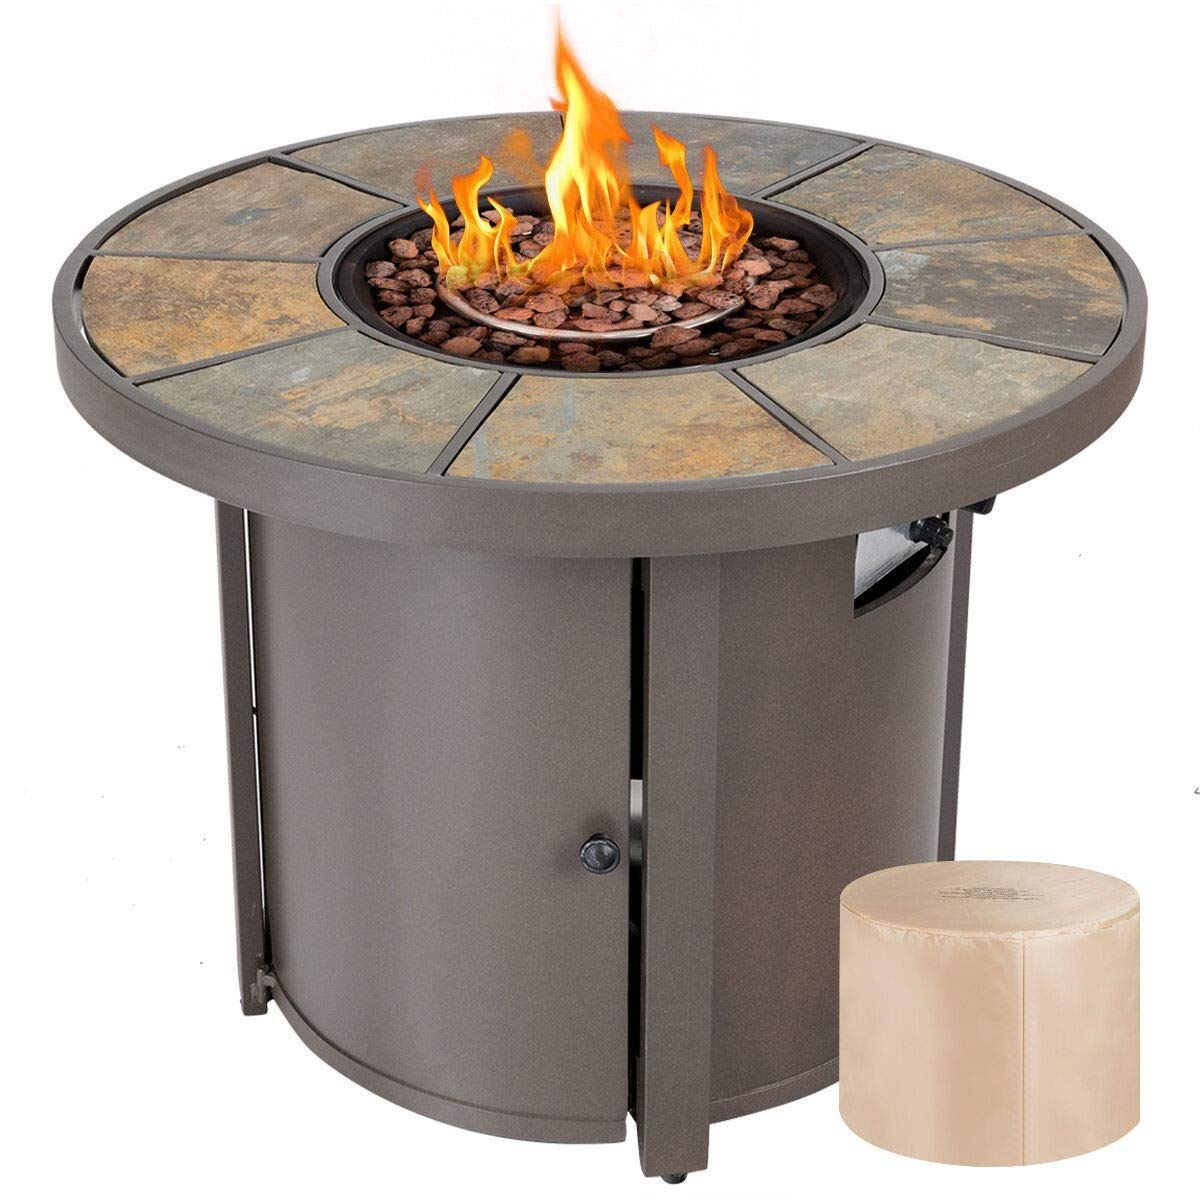 Giantex 32 Round Propane Gas Fire Pit Table 30,000 BTUs Heater Outdoor Table w Lava Rock Protective Cover 32 Brown